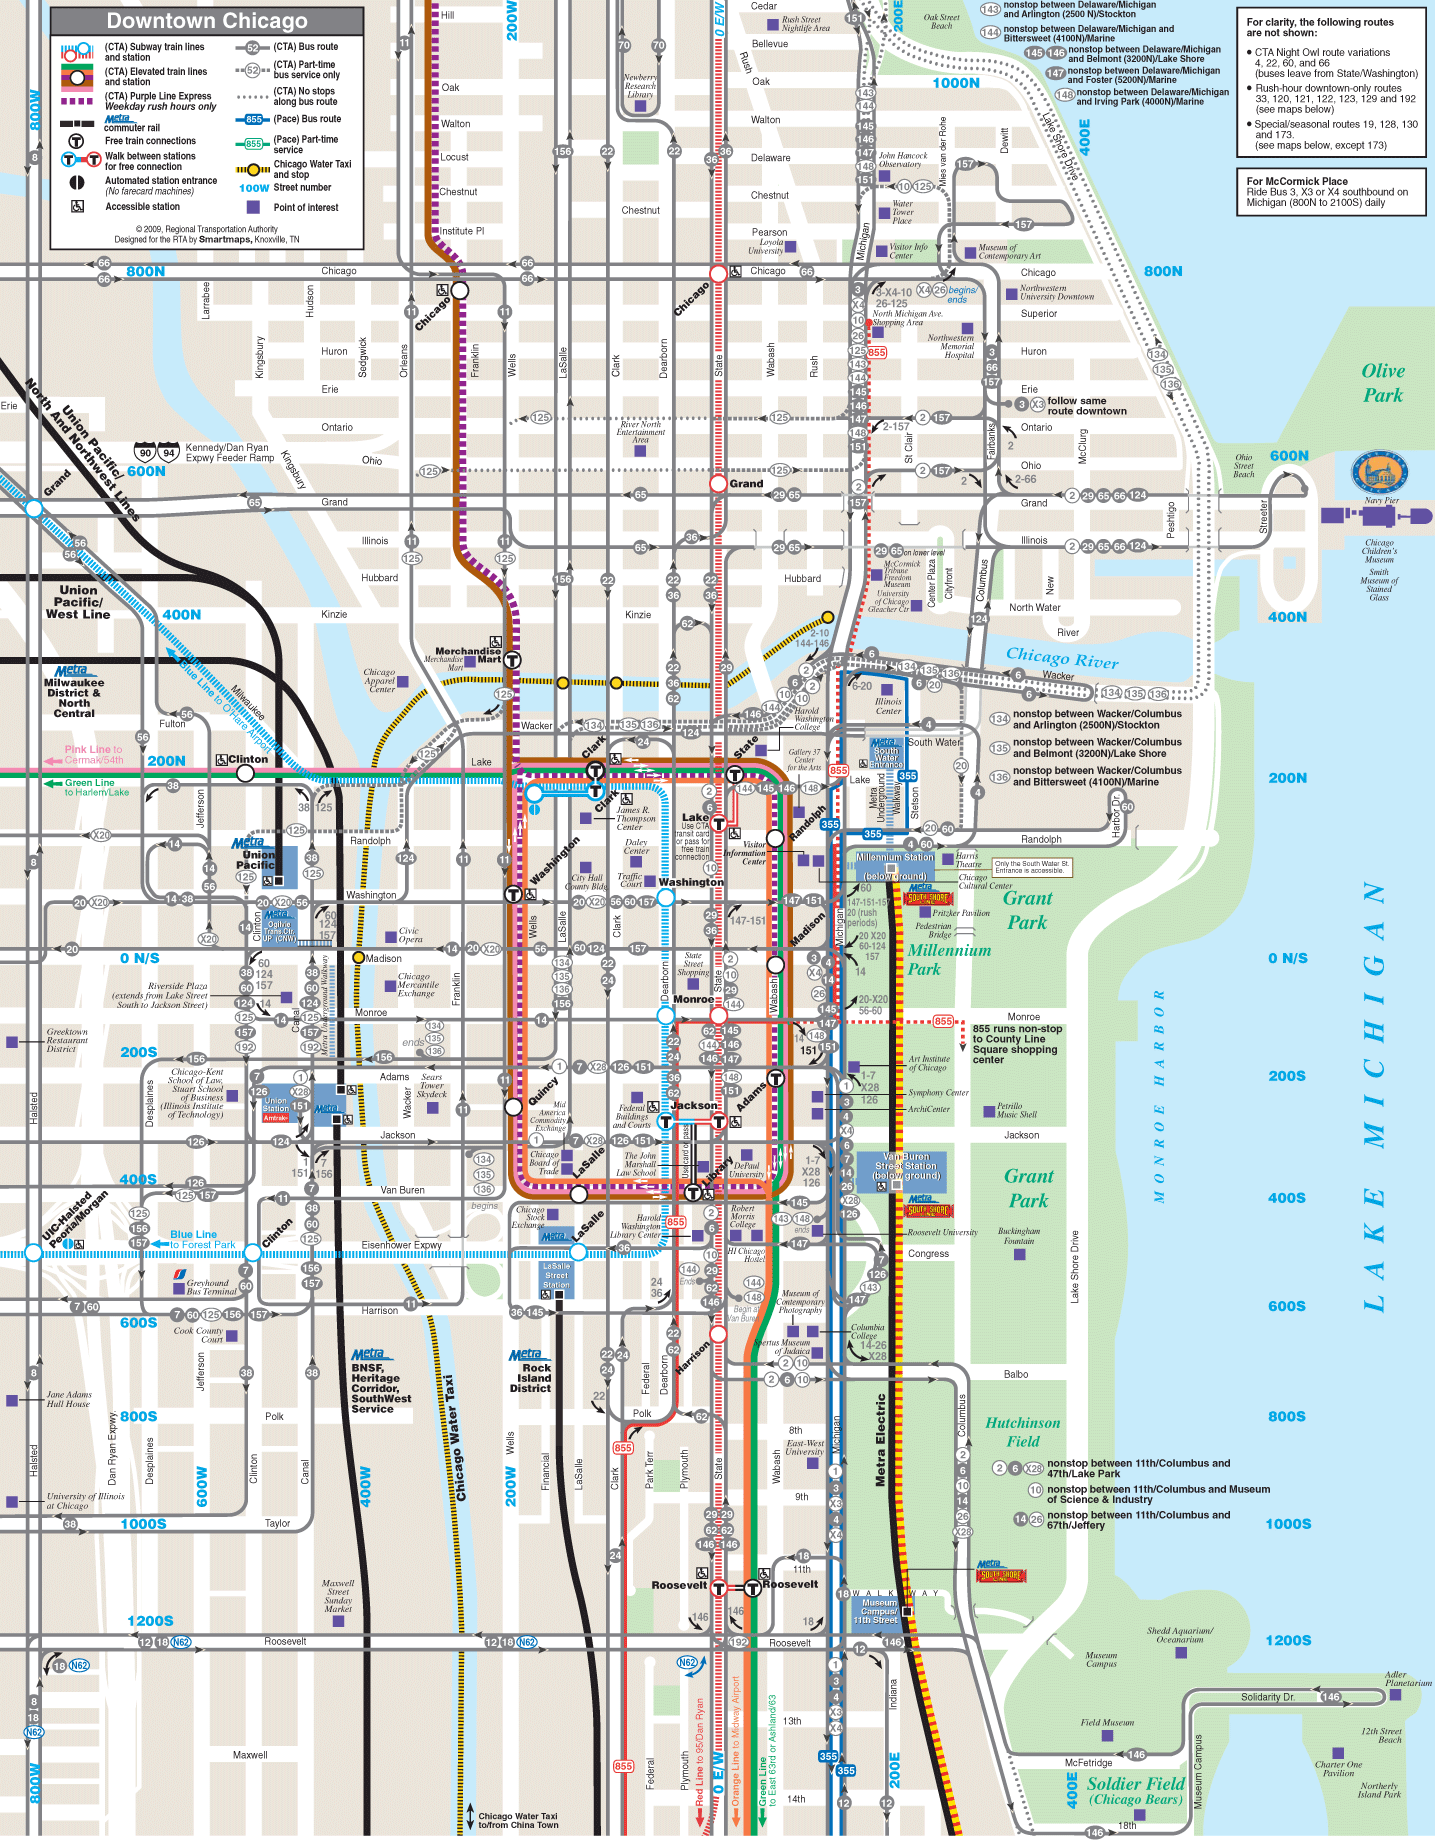 Chicago Downtown Transport Map Mapsofnet – Downtown Chicago Tourist Map